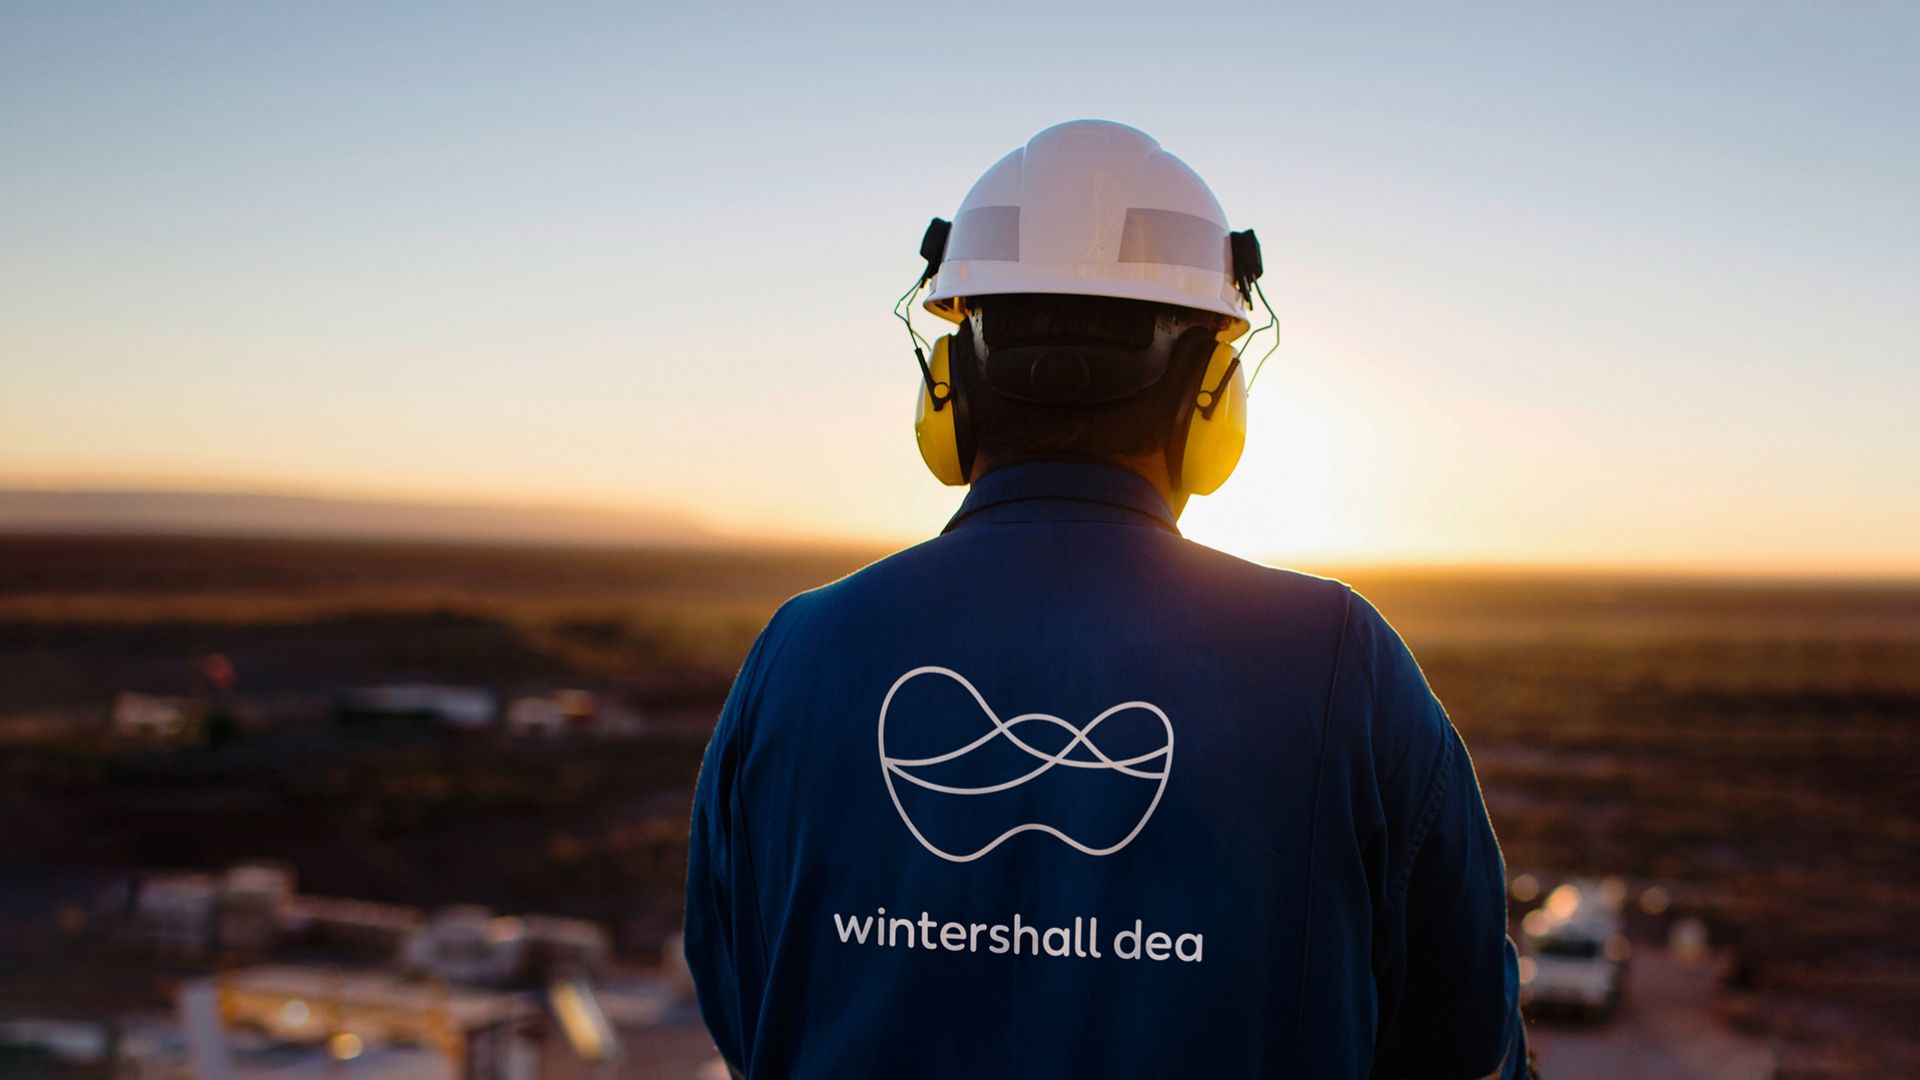 Wintershall Dea Annual Report 2019